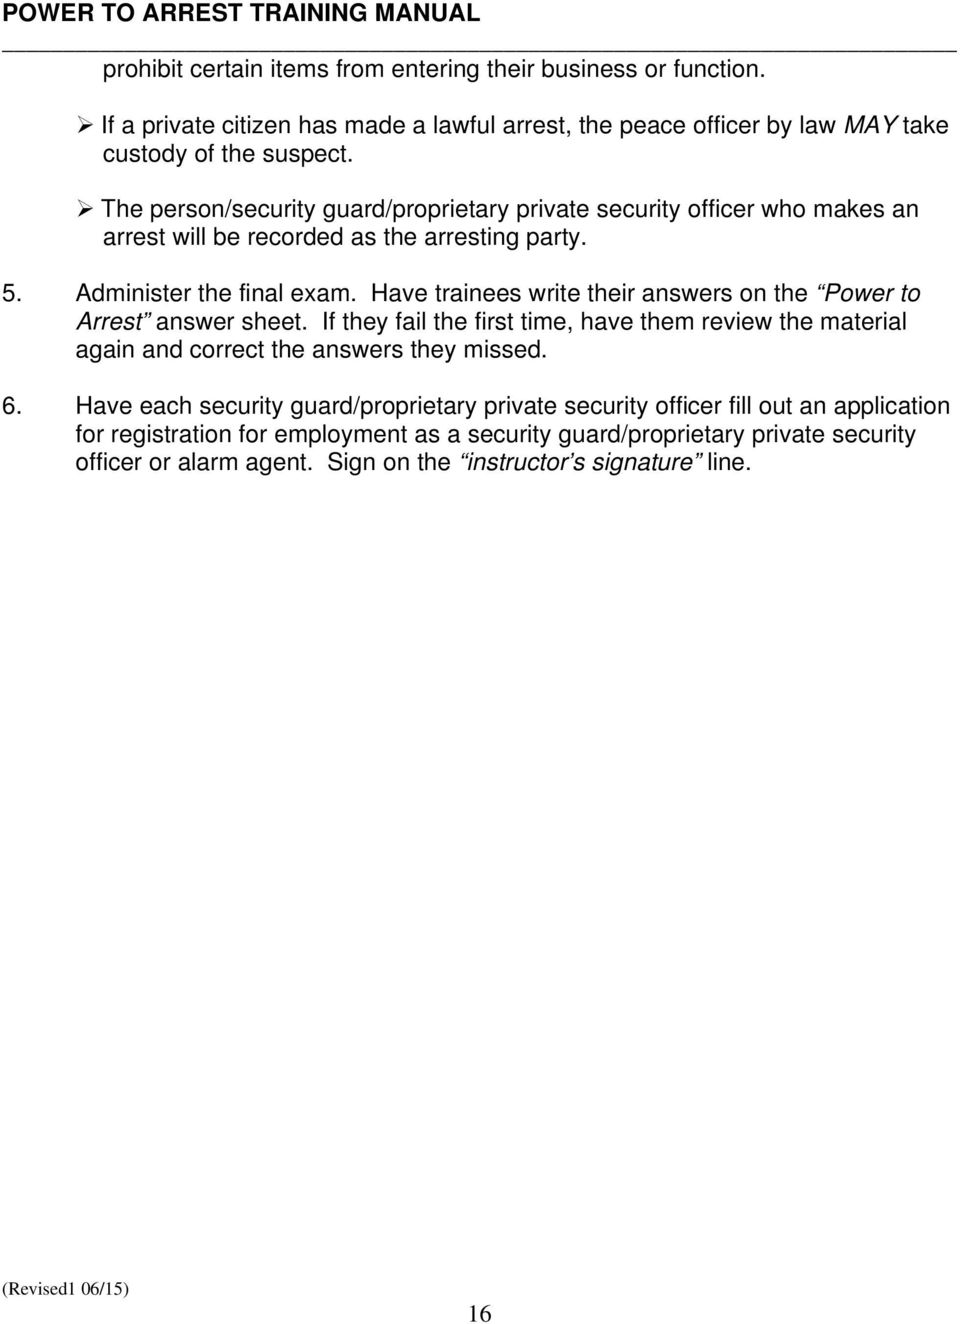 department of consumer affairs bureau of security and have trainees write their answers on the power to arrest answer sheet if they fail 17 the responsibilities of the security guard proprietary